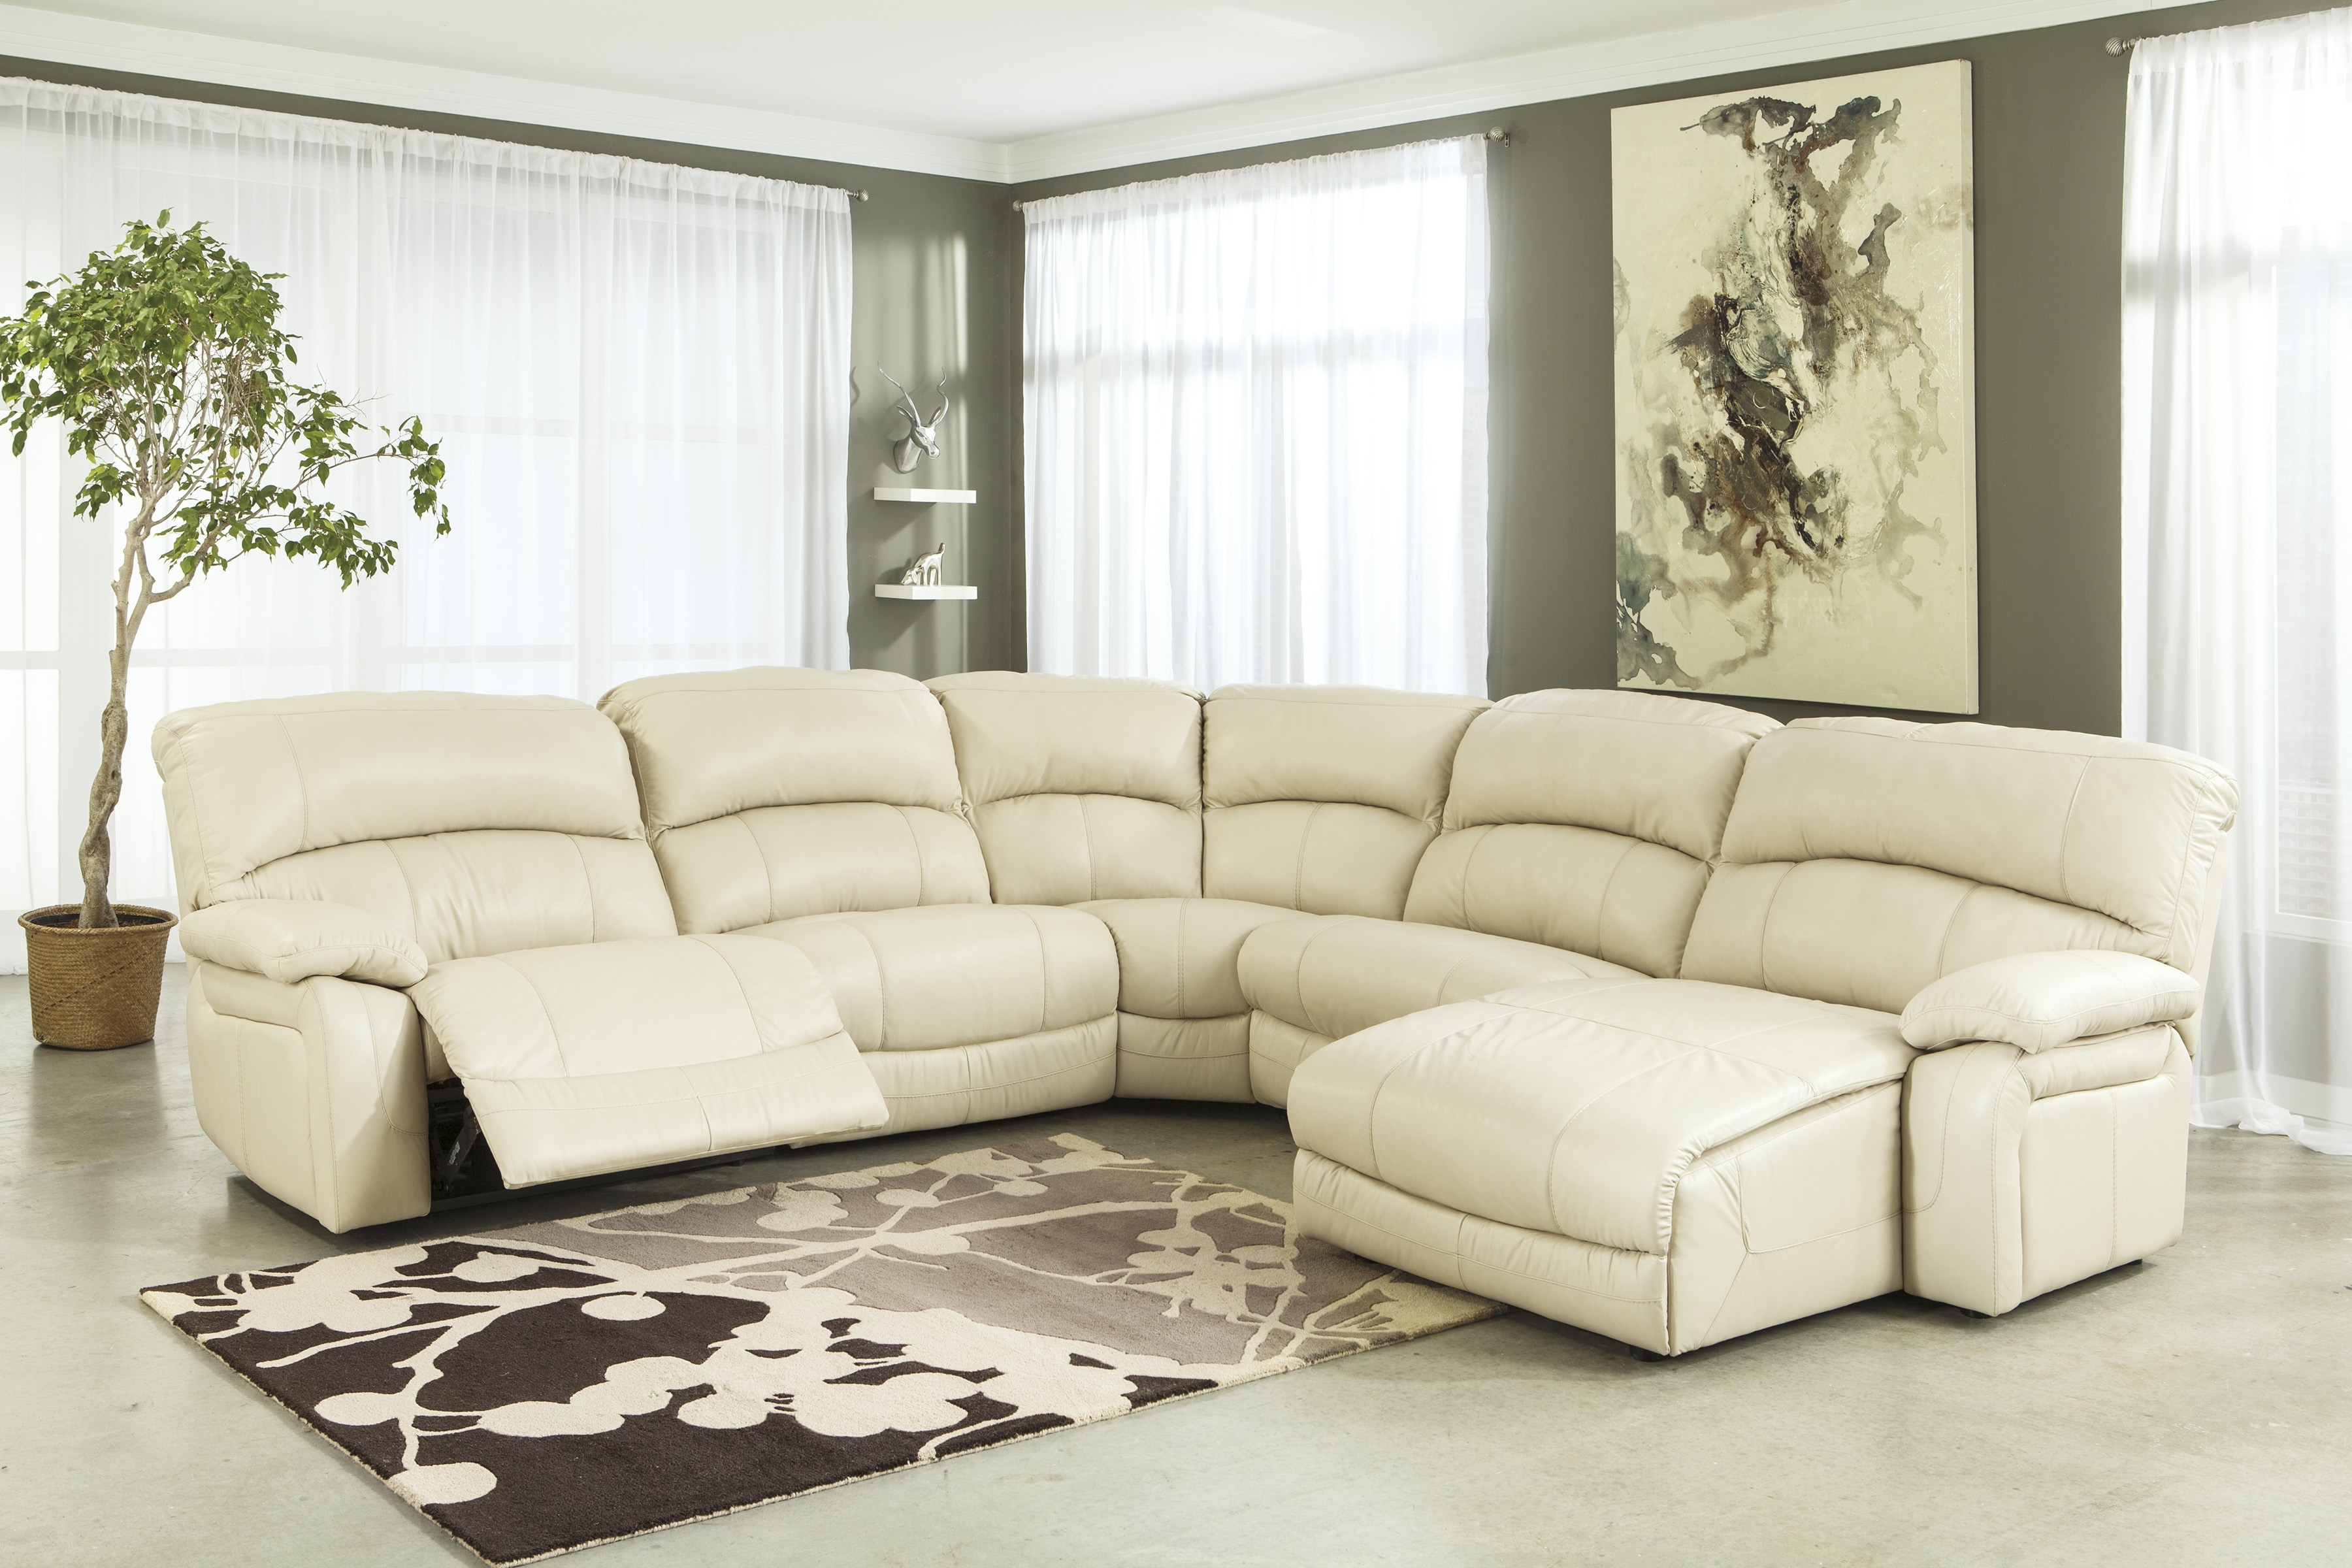 Famous Modern Couches Tags : Modern Sofa Recliner Sectional Reclining For Large Sofa Chairs (View 4 of 20)